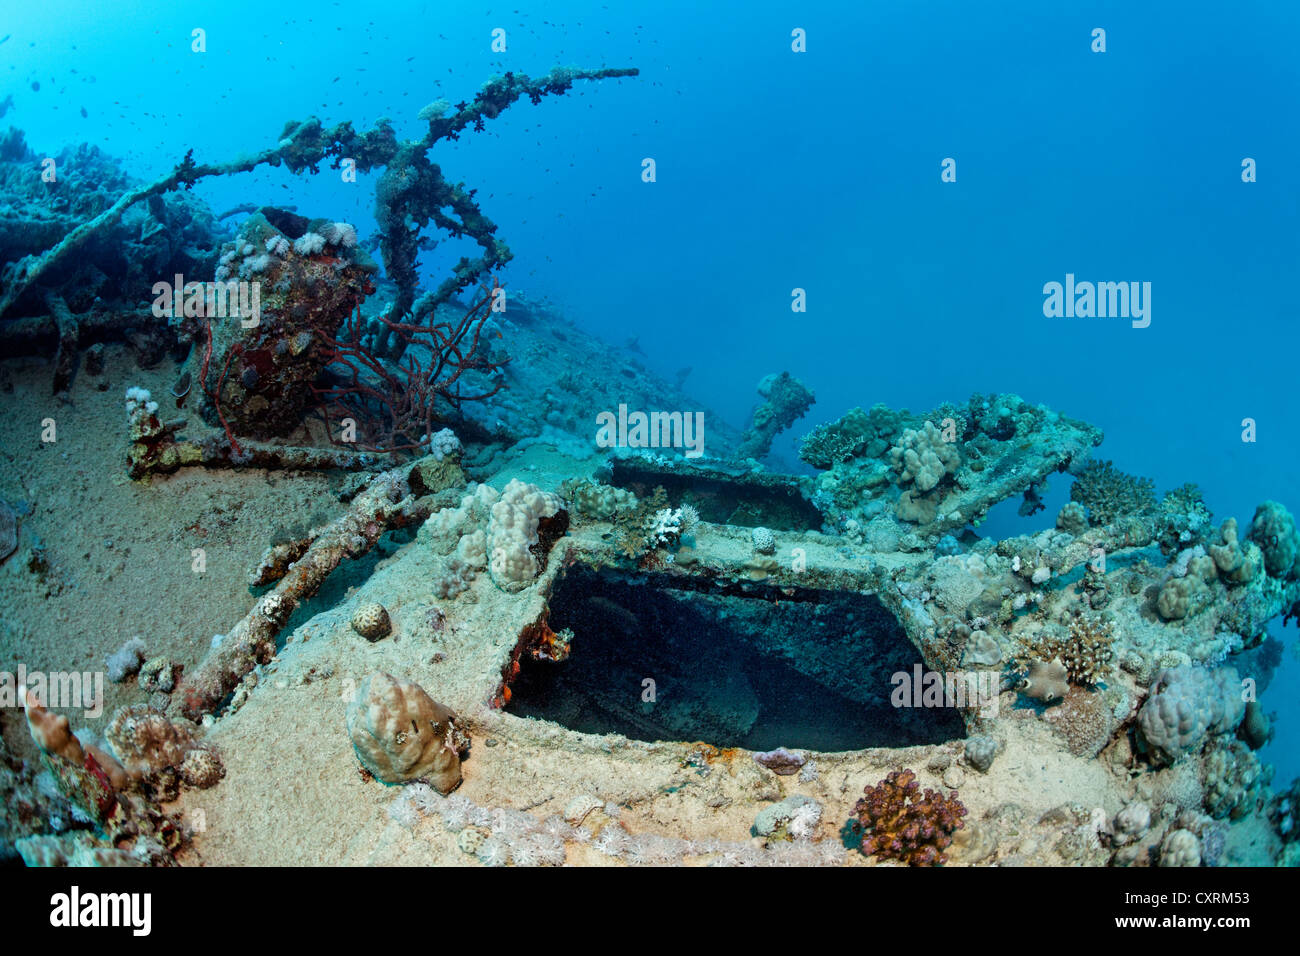 Open hatch overgrown with corals, shipwreck, tanker, S.S. Turbo, build 1912, sank on 4/4/1942 during World War II - Stock Image